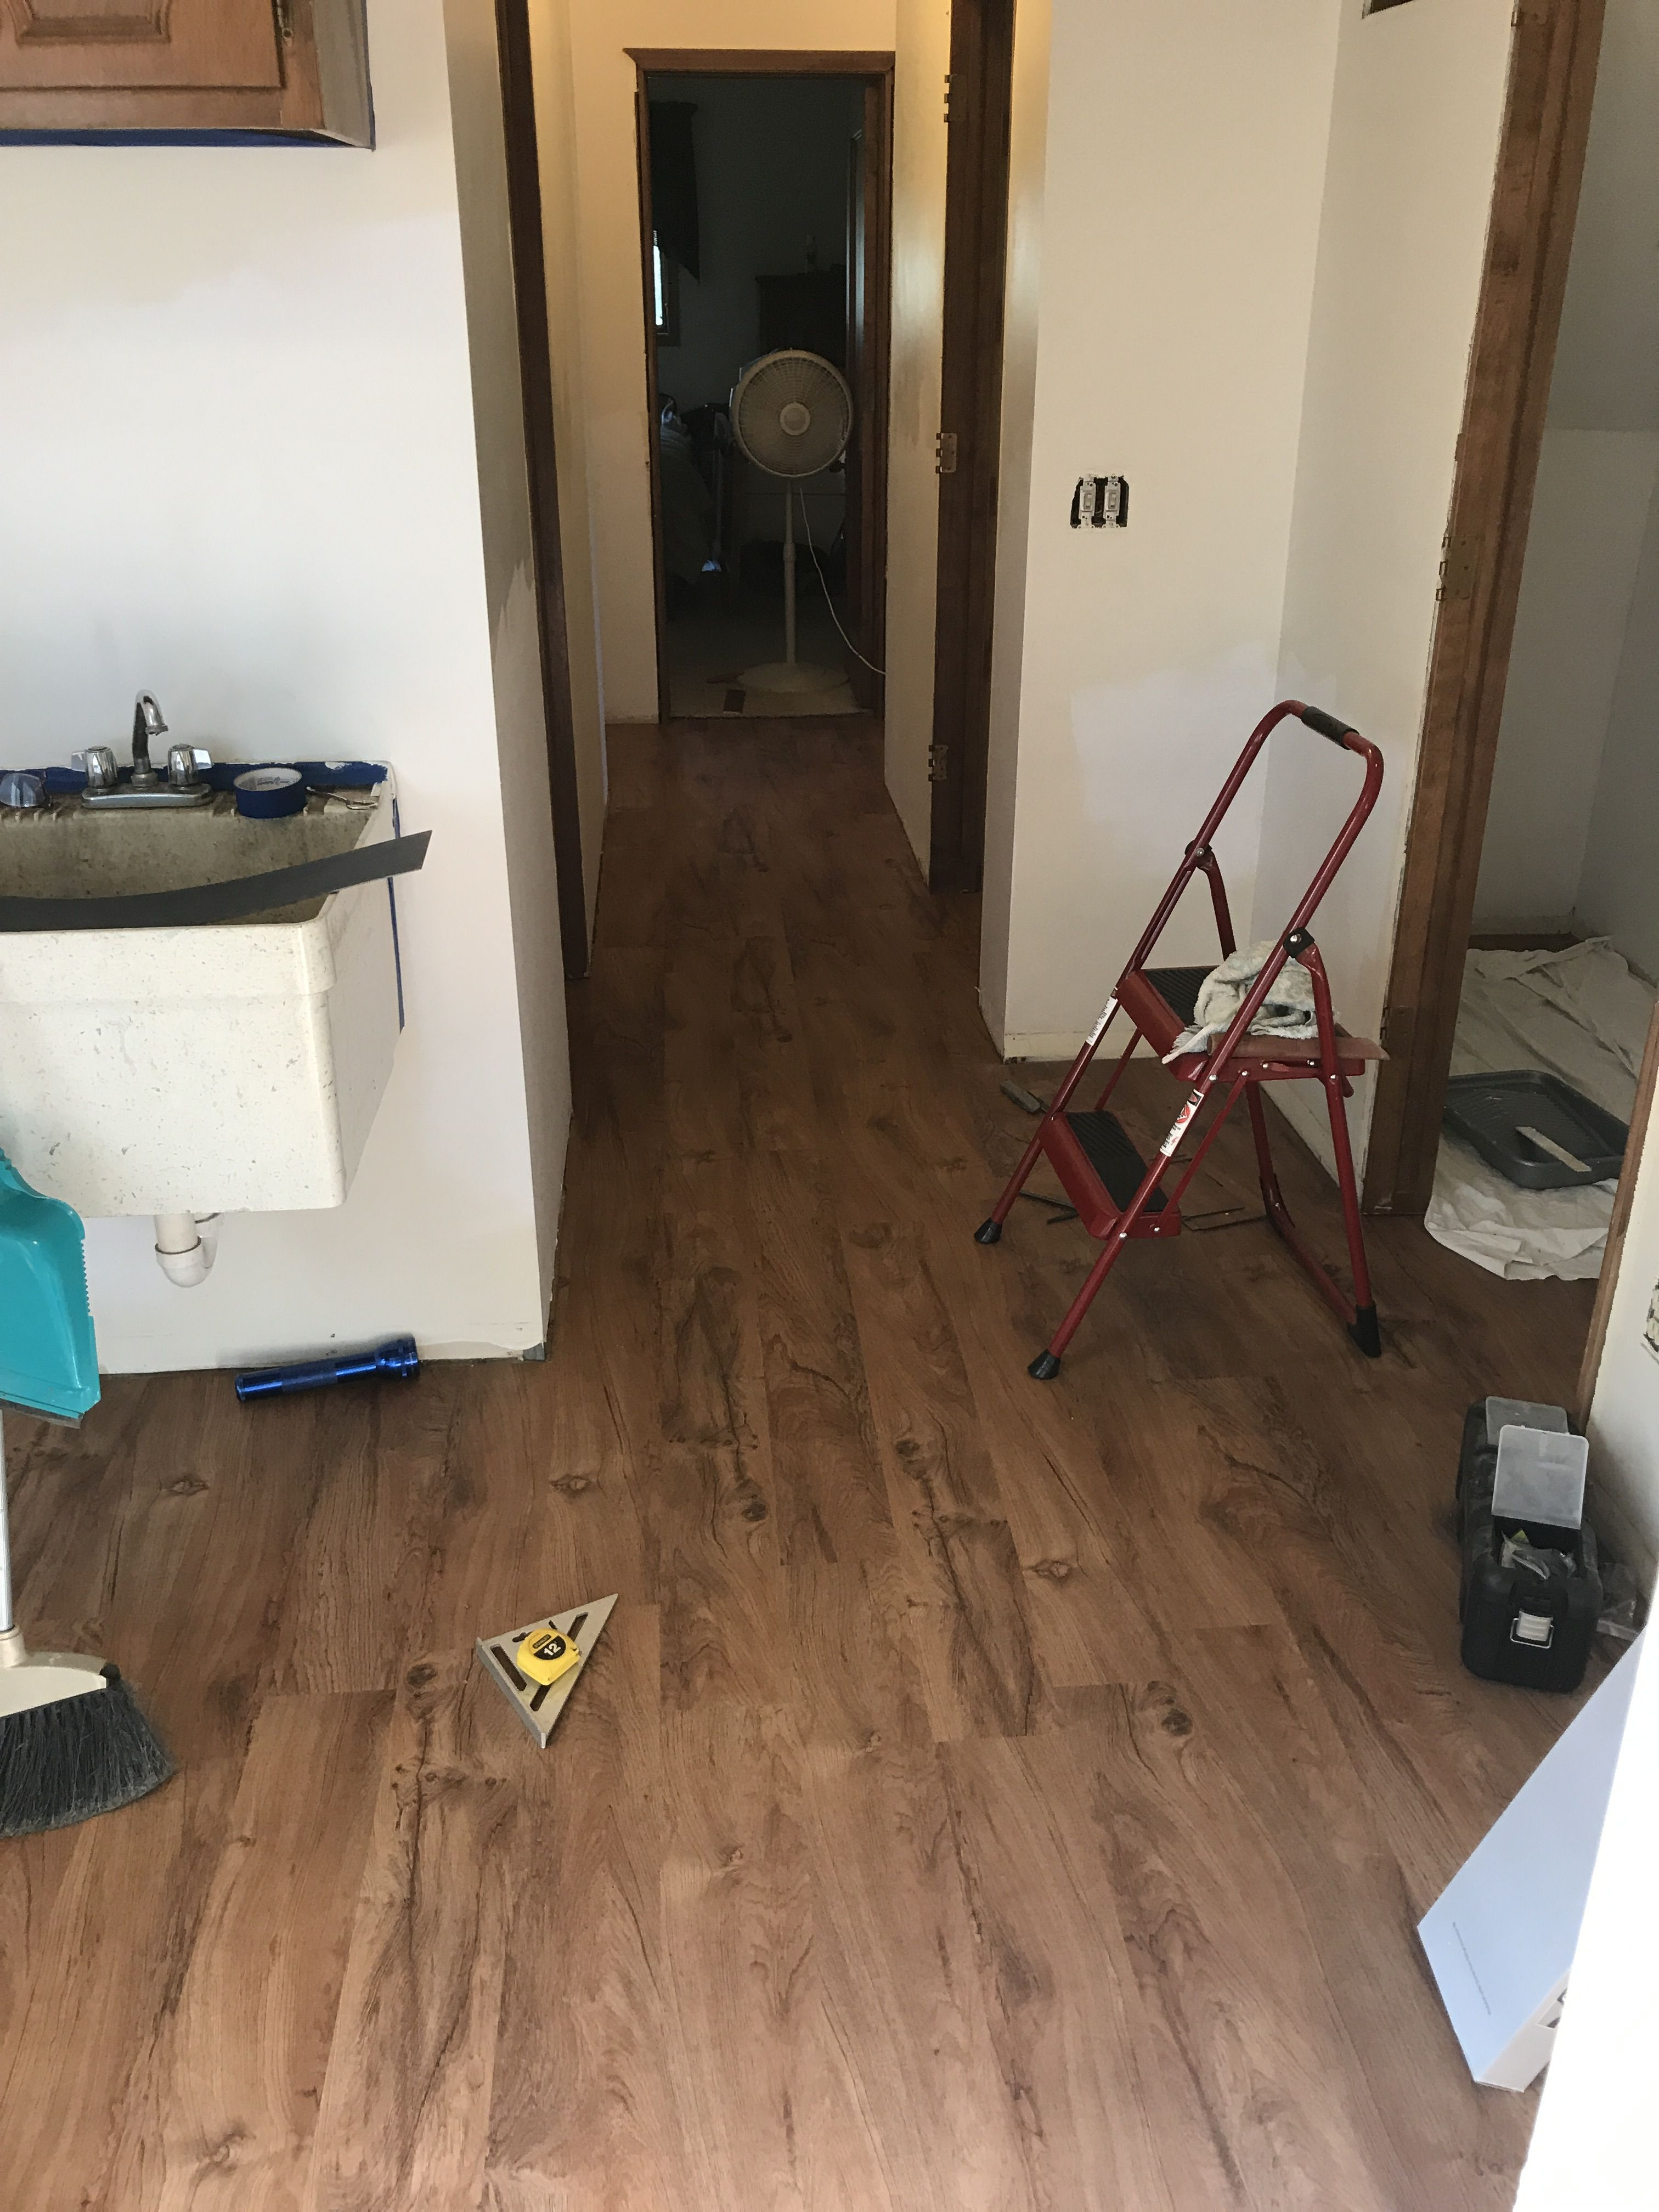 awesome flooring peel pallet and vinylank stick laminate wood kitchen vs of vinyl lovely shop wall planks floors look at lowes chair floor